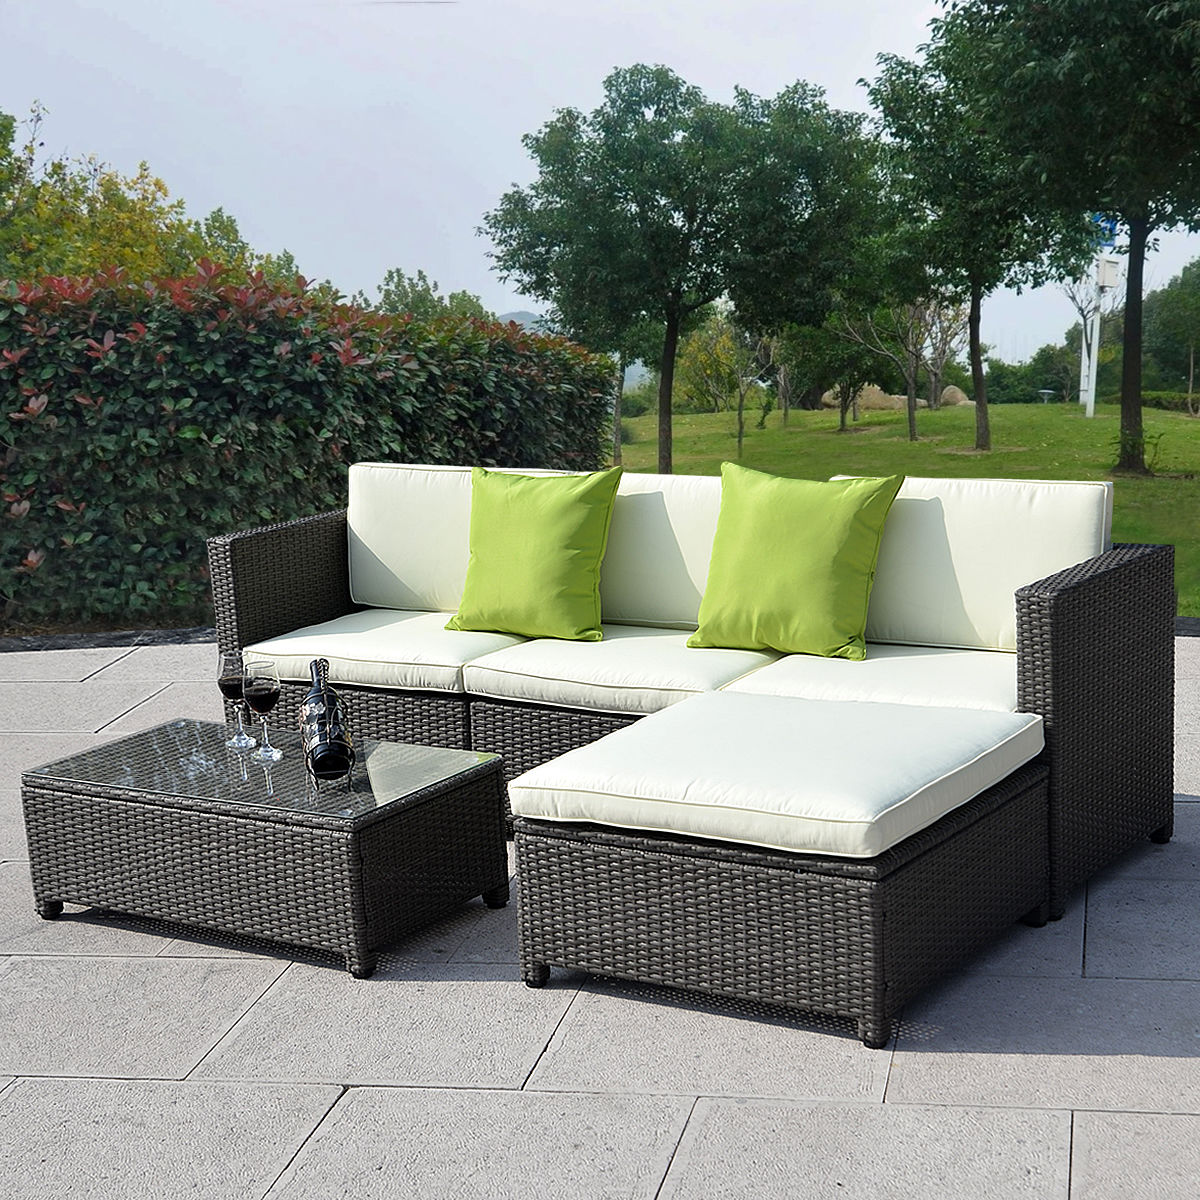 Outdoor Patio Wicker Sofa Set - 5PC PE Rattan on Outdoor Living Wicker  id=14142